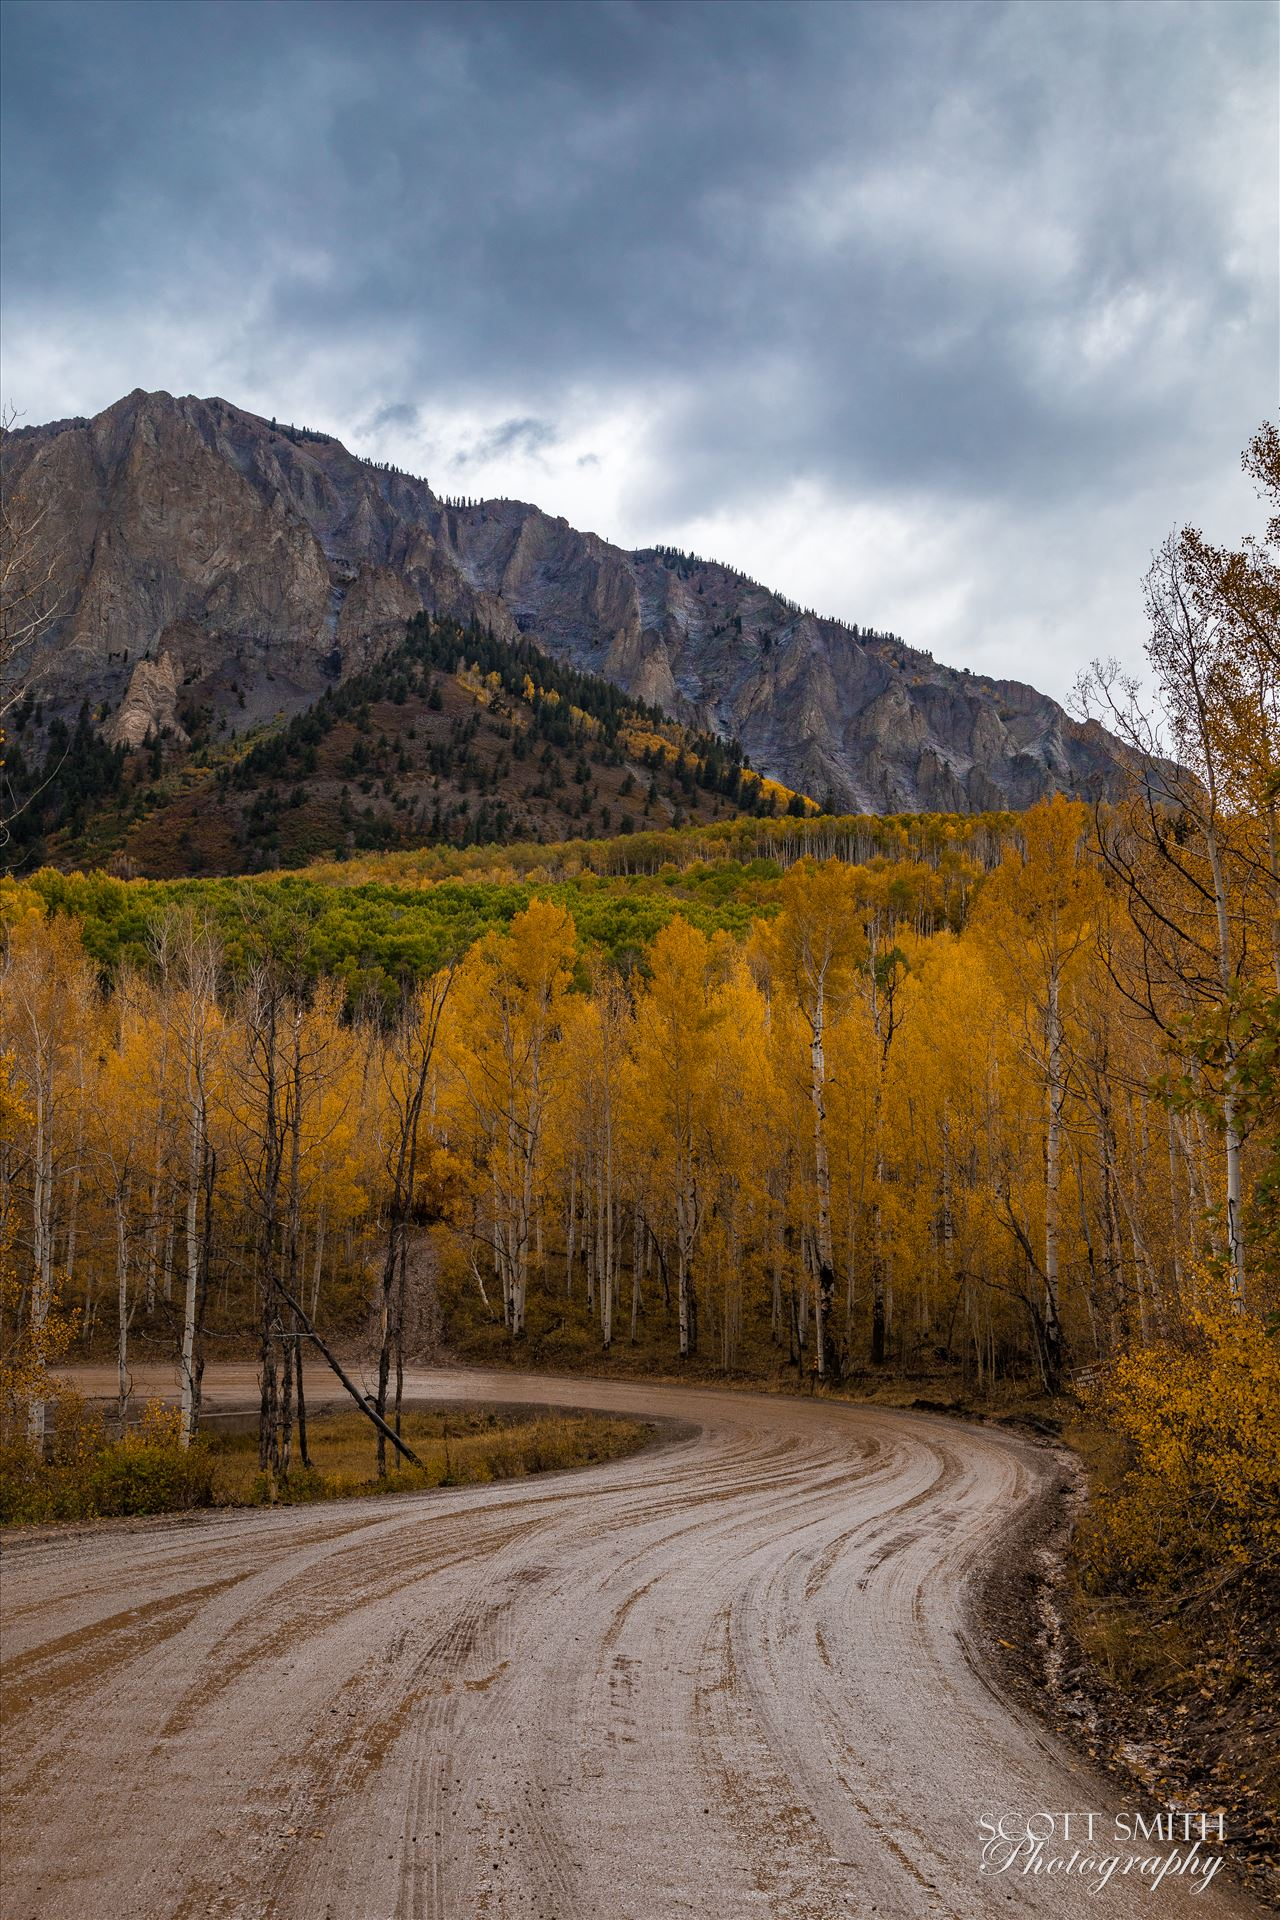 Marcellina Mountain 1 - Marcellina Mountain from Kebler Pass, on the way to Creste Butte, Saturday 9/29/17. by Scott Smith Photos